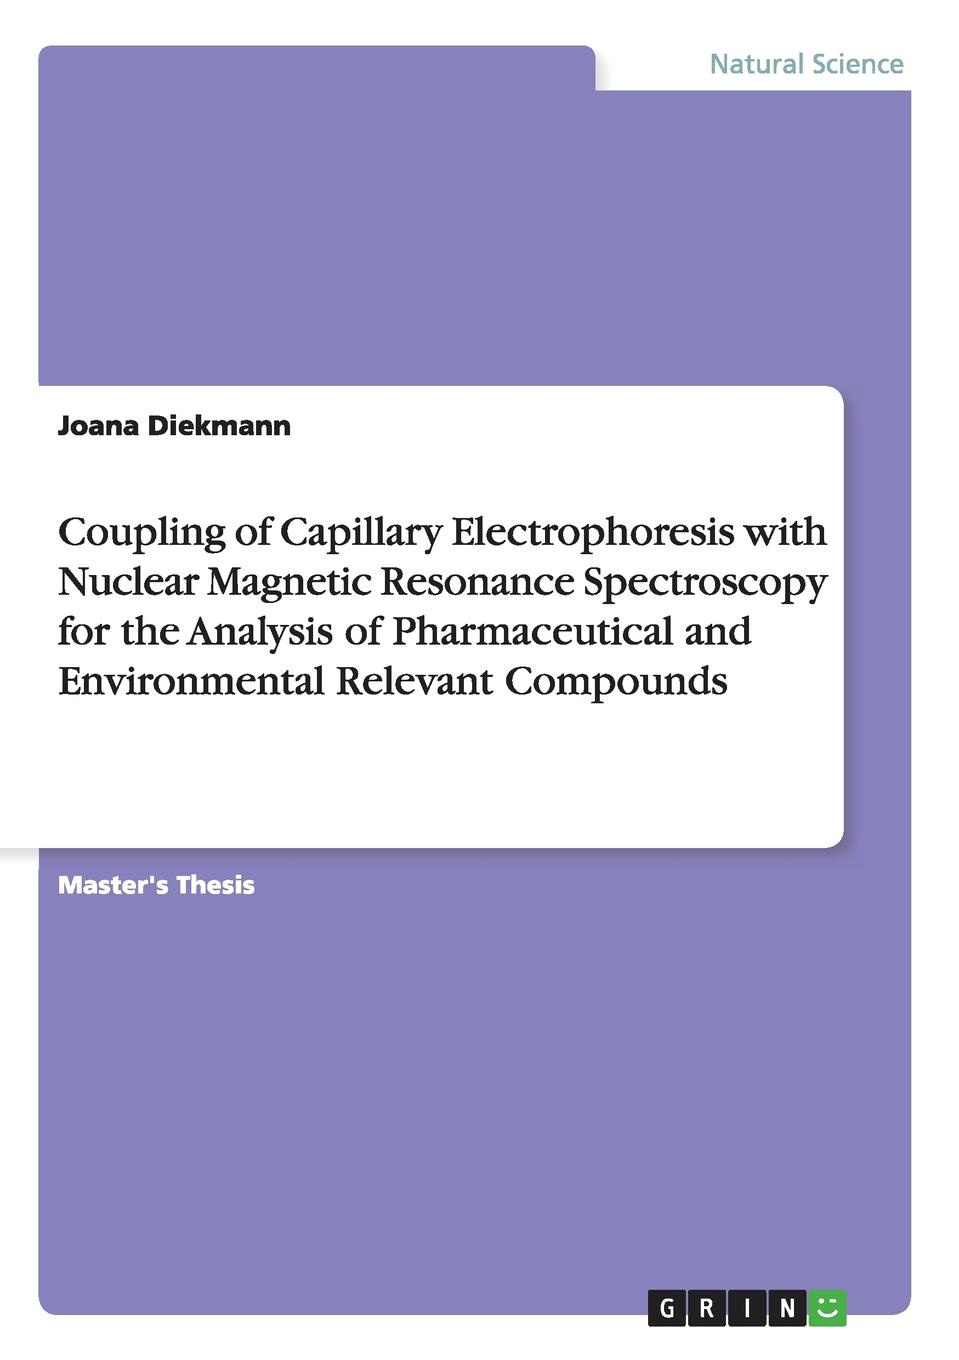 купить Joana Diekmann Coupling of Capillary Electrophoresis with Nuclear Magnetic Resonance Spectroscopy for the Analysis of Pharmaceutical and Environmental Relevant Compounds по цене 3439 рублей